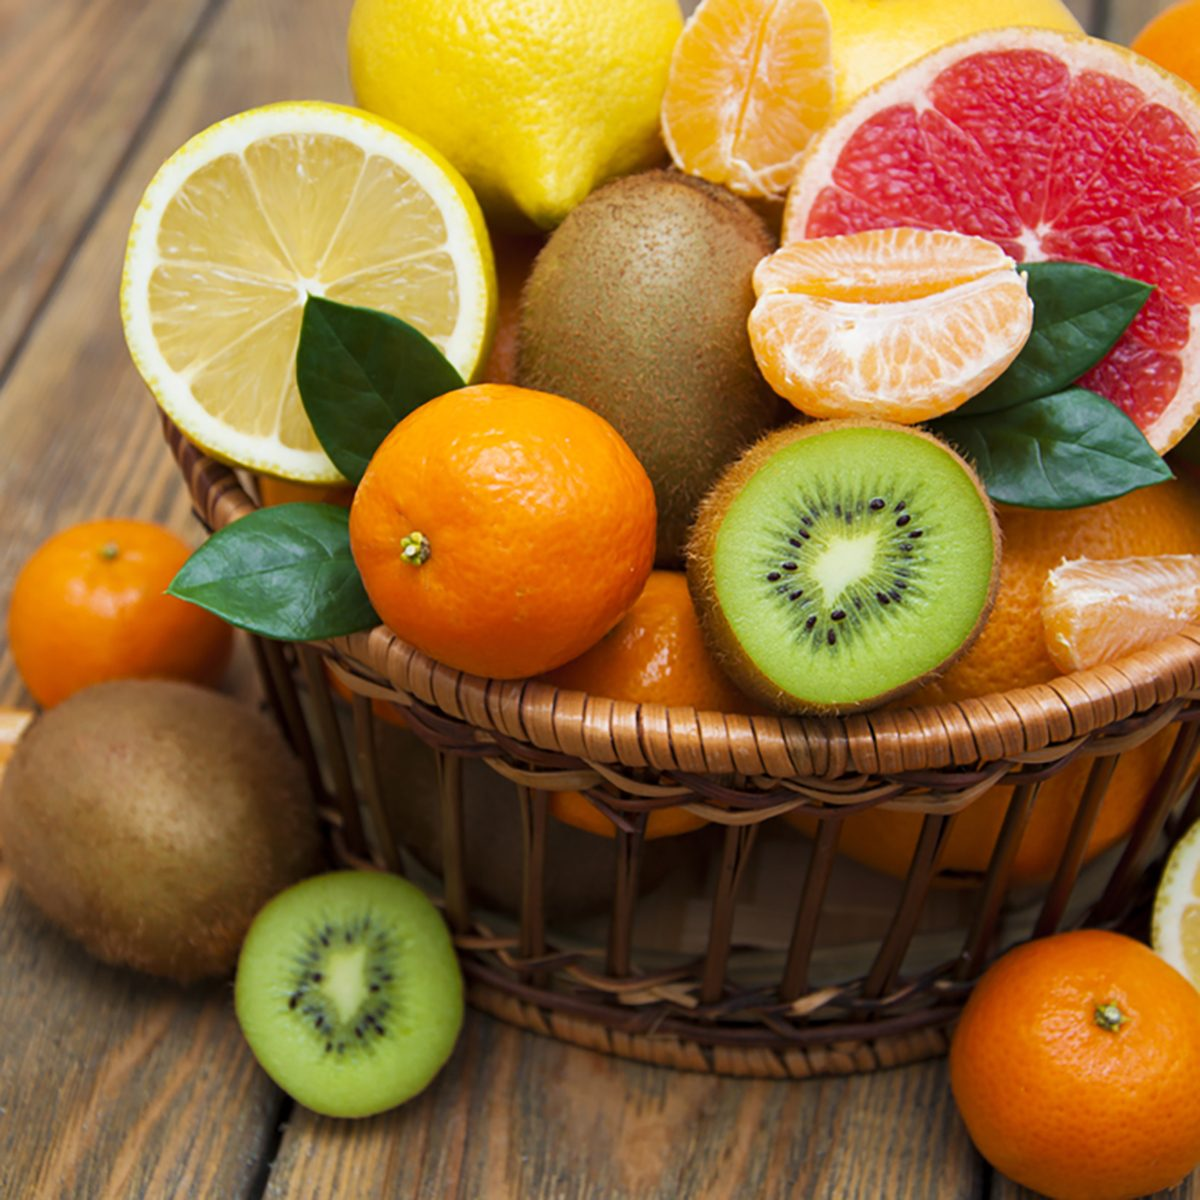 Fresh juicy citrus fruits in a basket on a wooden background